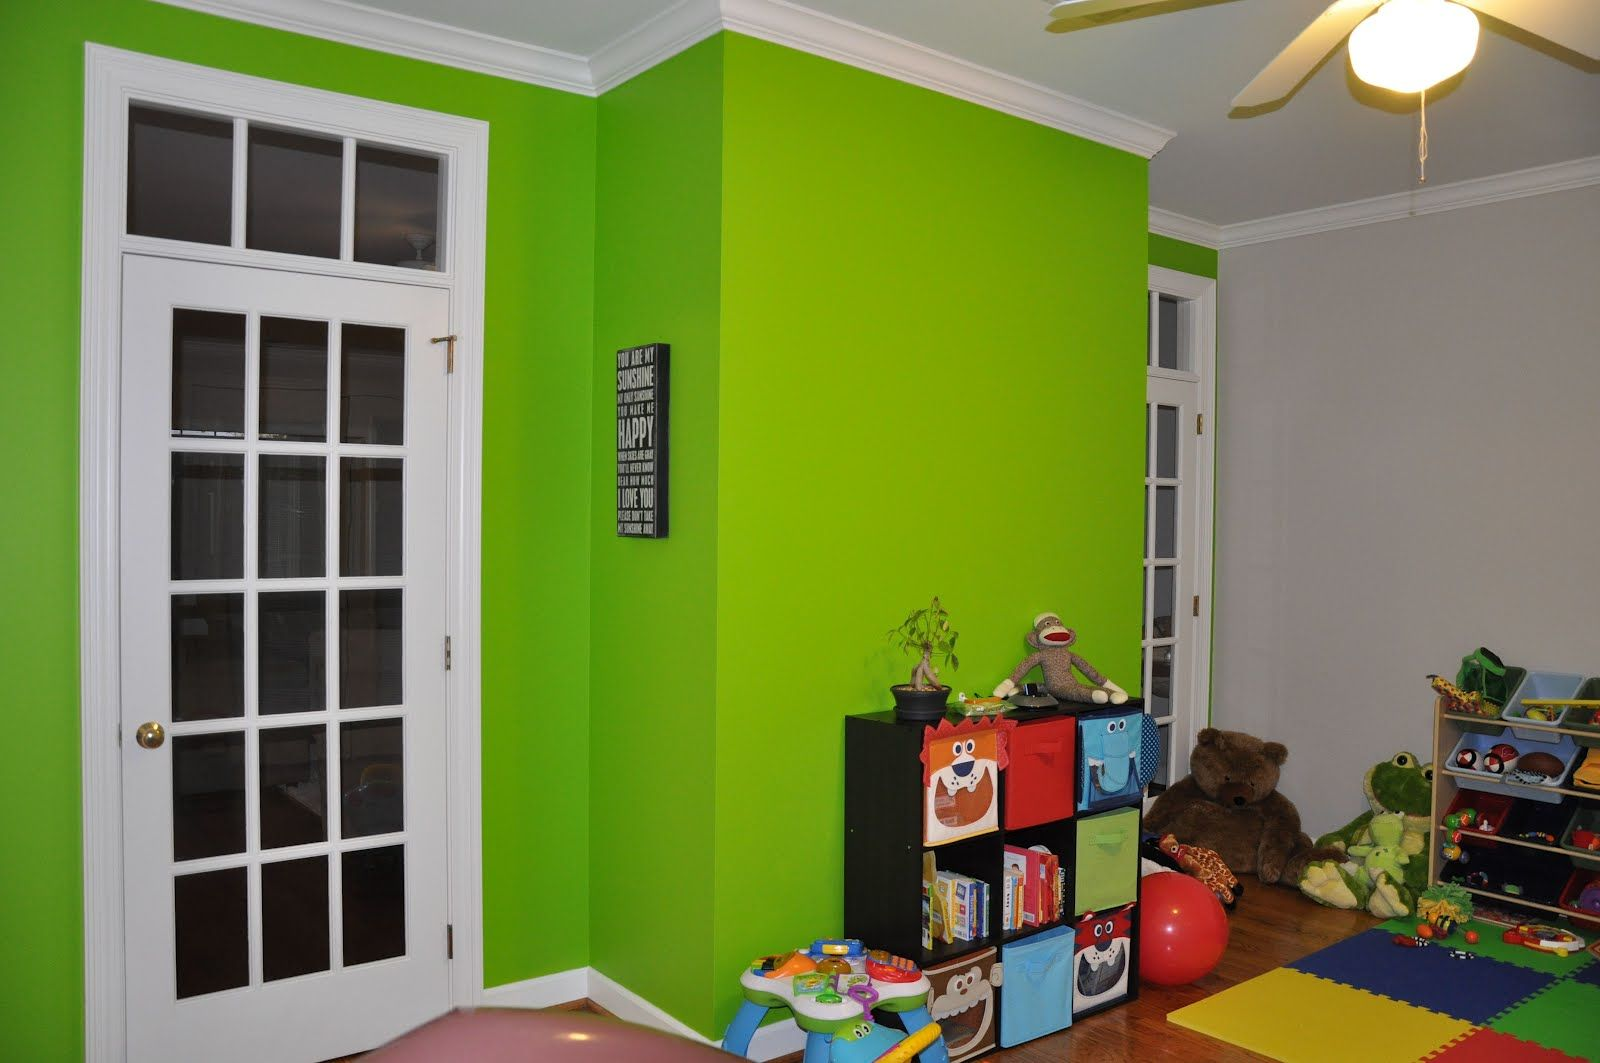 Light Green Paint lime green bedroom ideas trend decoration | isaï's bedroom